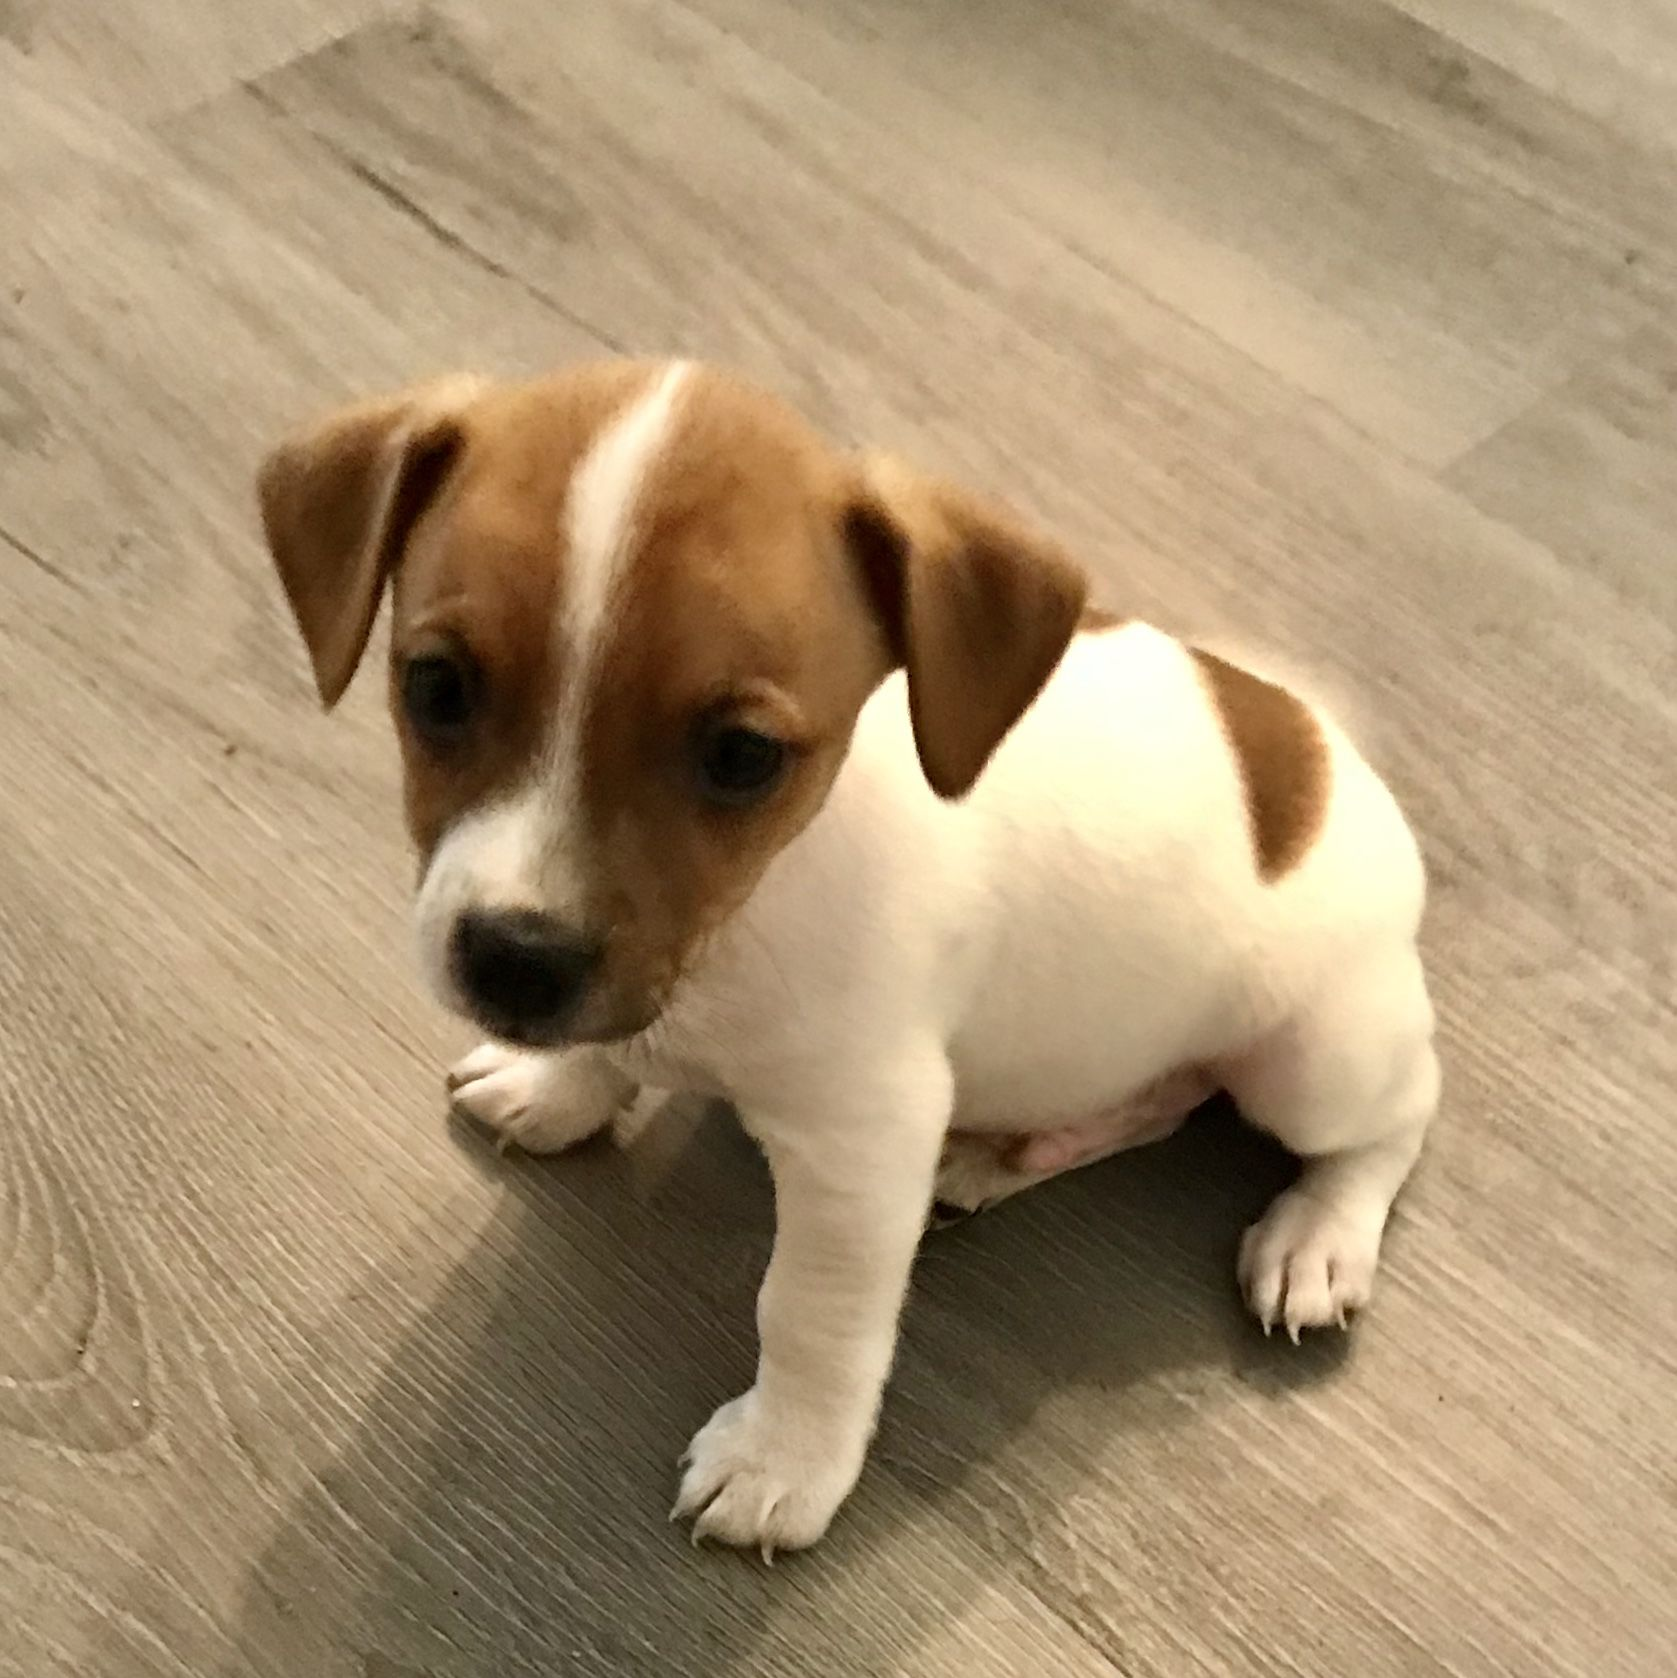 Jack Russell Puppies image 2